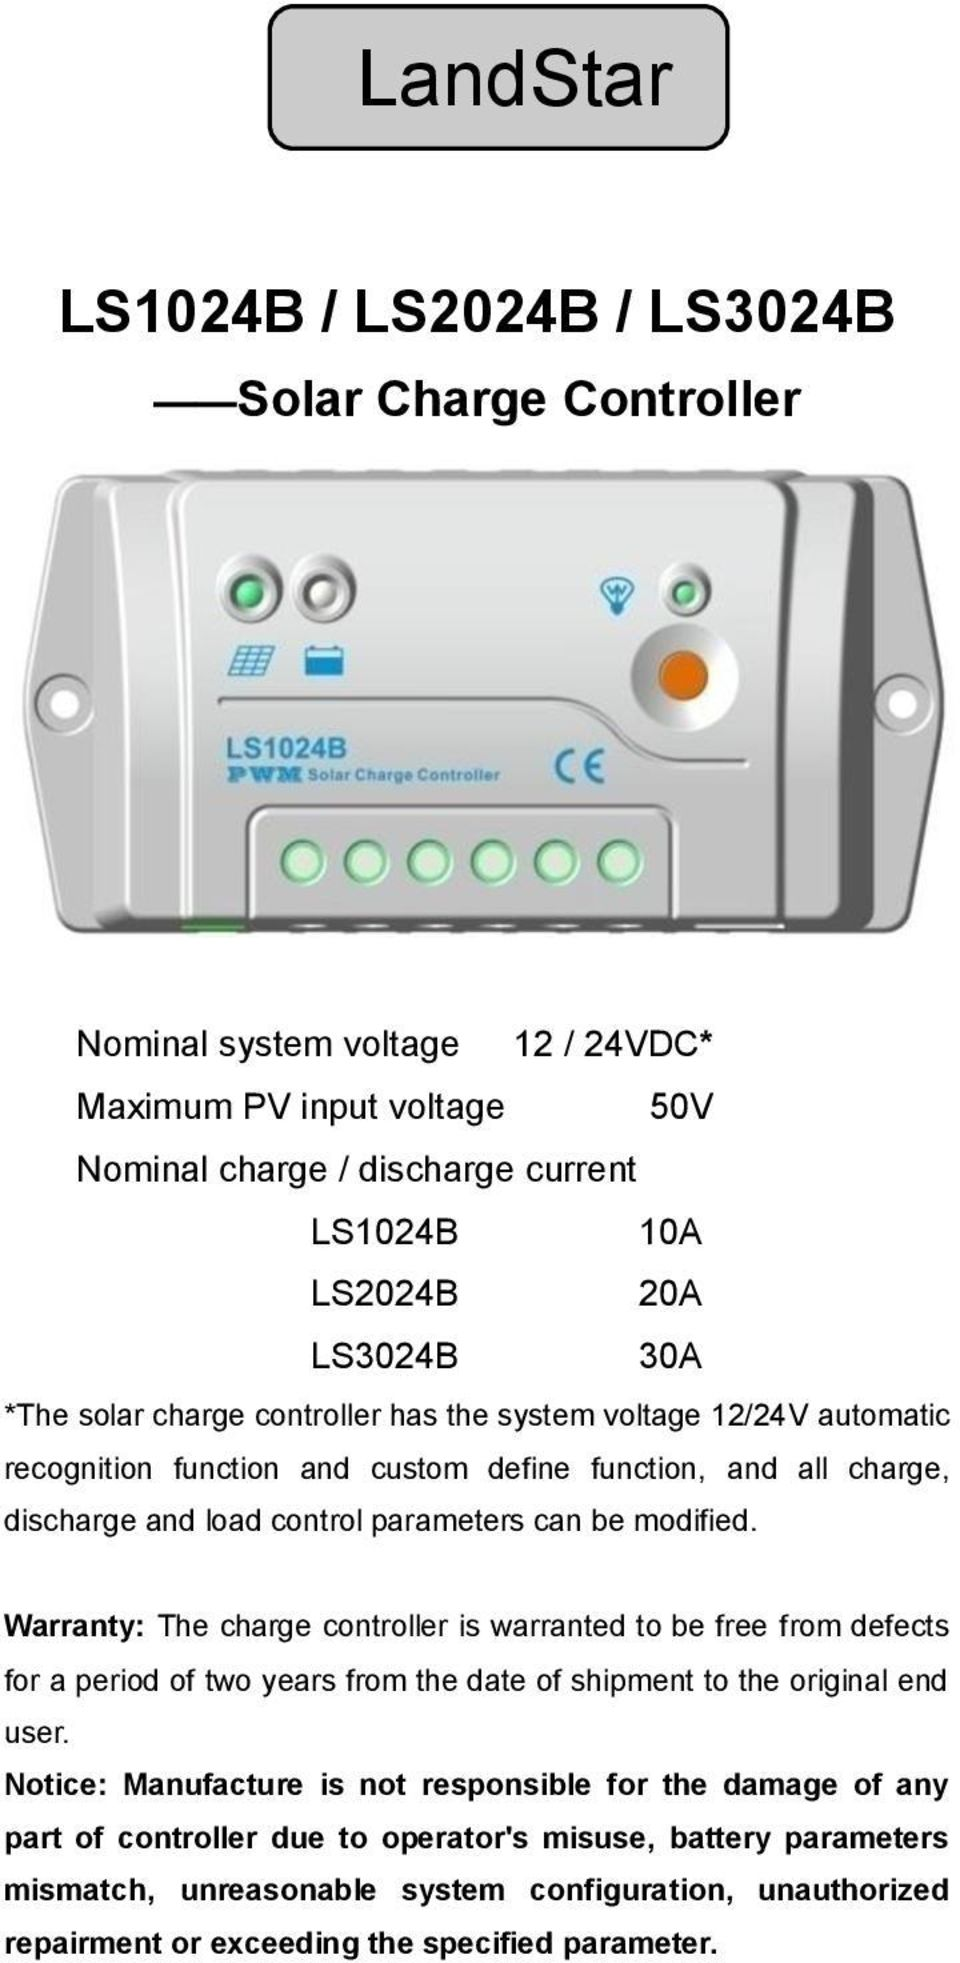 Pwm 12v 24v Solar System Charge Controller Remon Industrial Limited Ls1024b Ls2024b Ls3024b User Manual Pdf Warranty The Is Warranted To Be Free From Defects For A